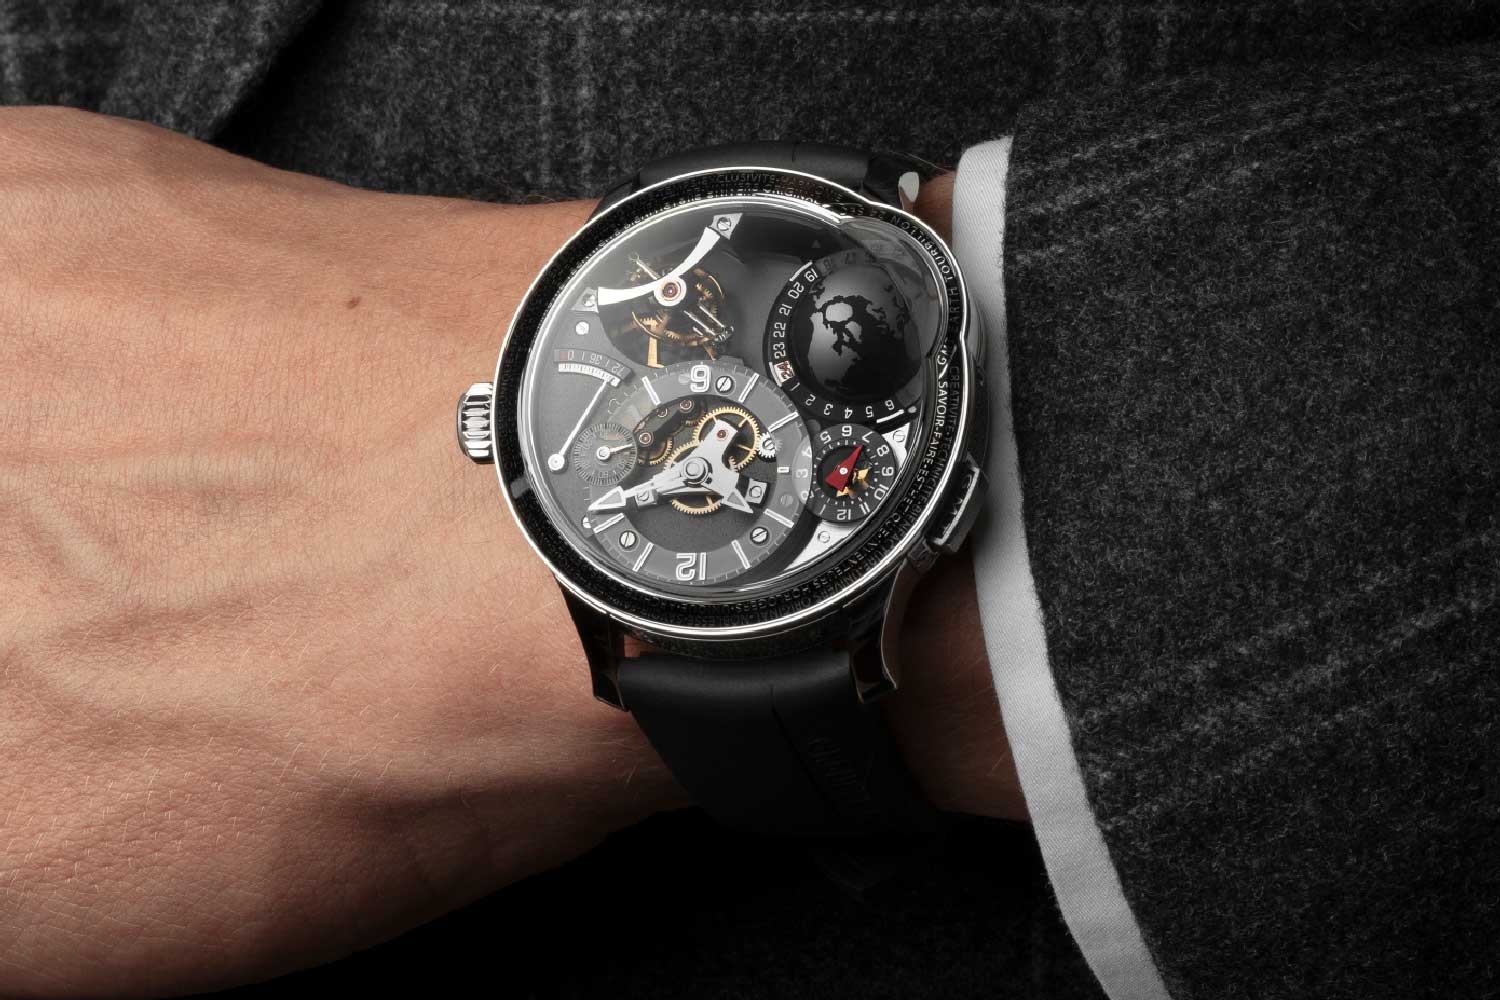 Limited to just 11 pieces, this is Greubel Forsey's third and final signature watch in the GMT Earth series.